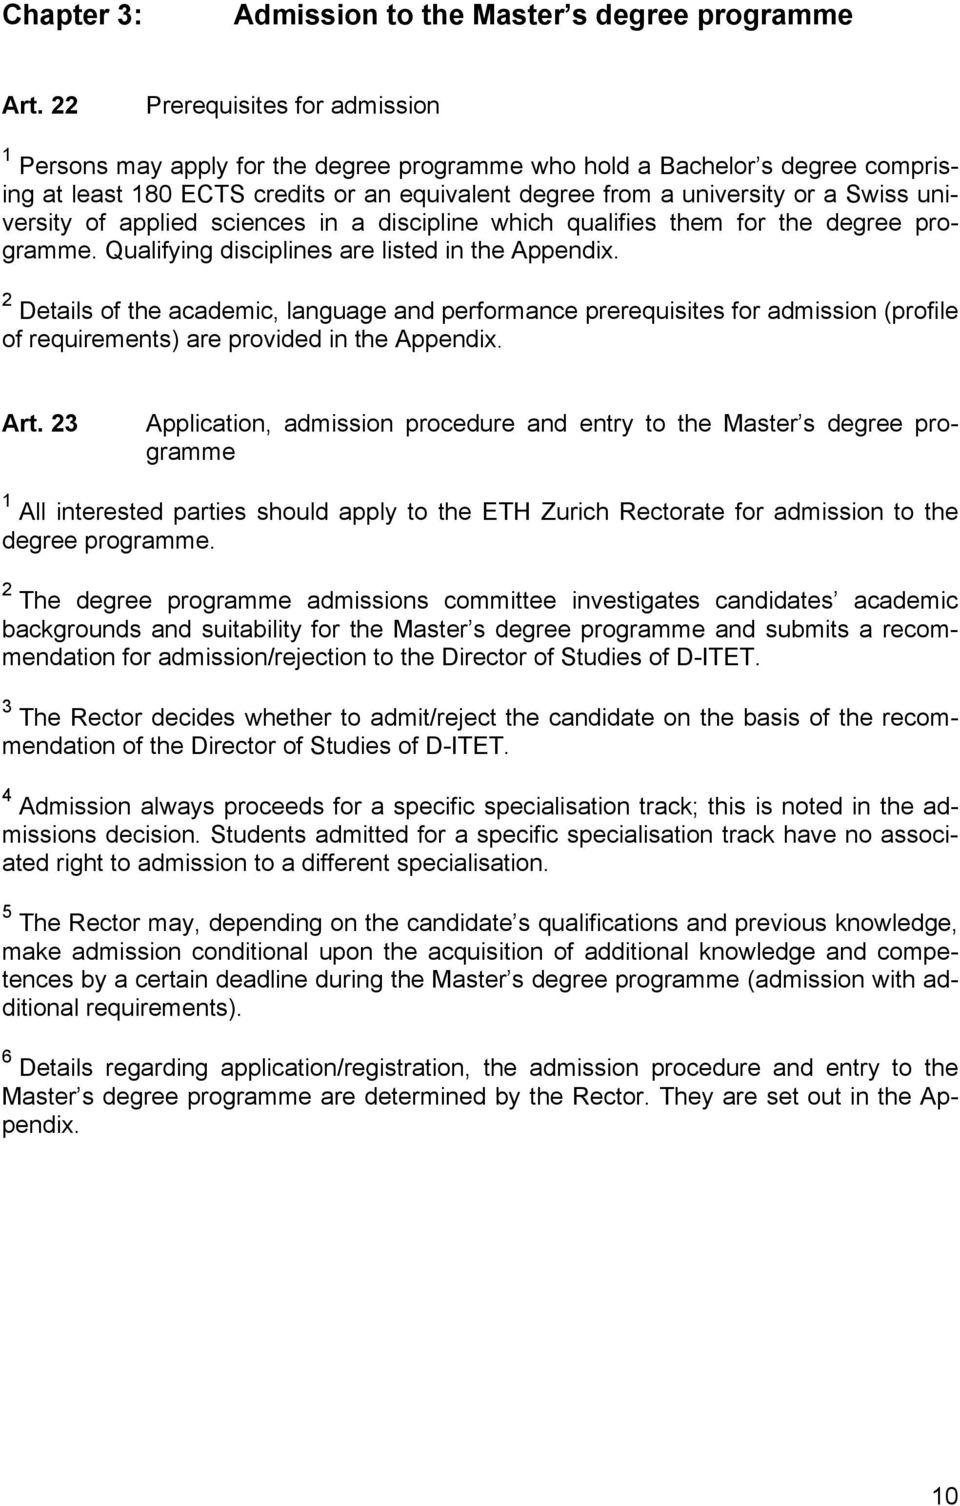 university of applied sciences in a discipline which qualifies them for the degree programme. Qualifying disciplines are listed in the Appendix.